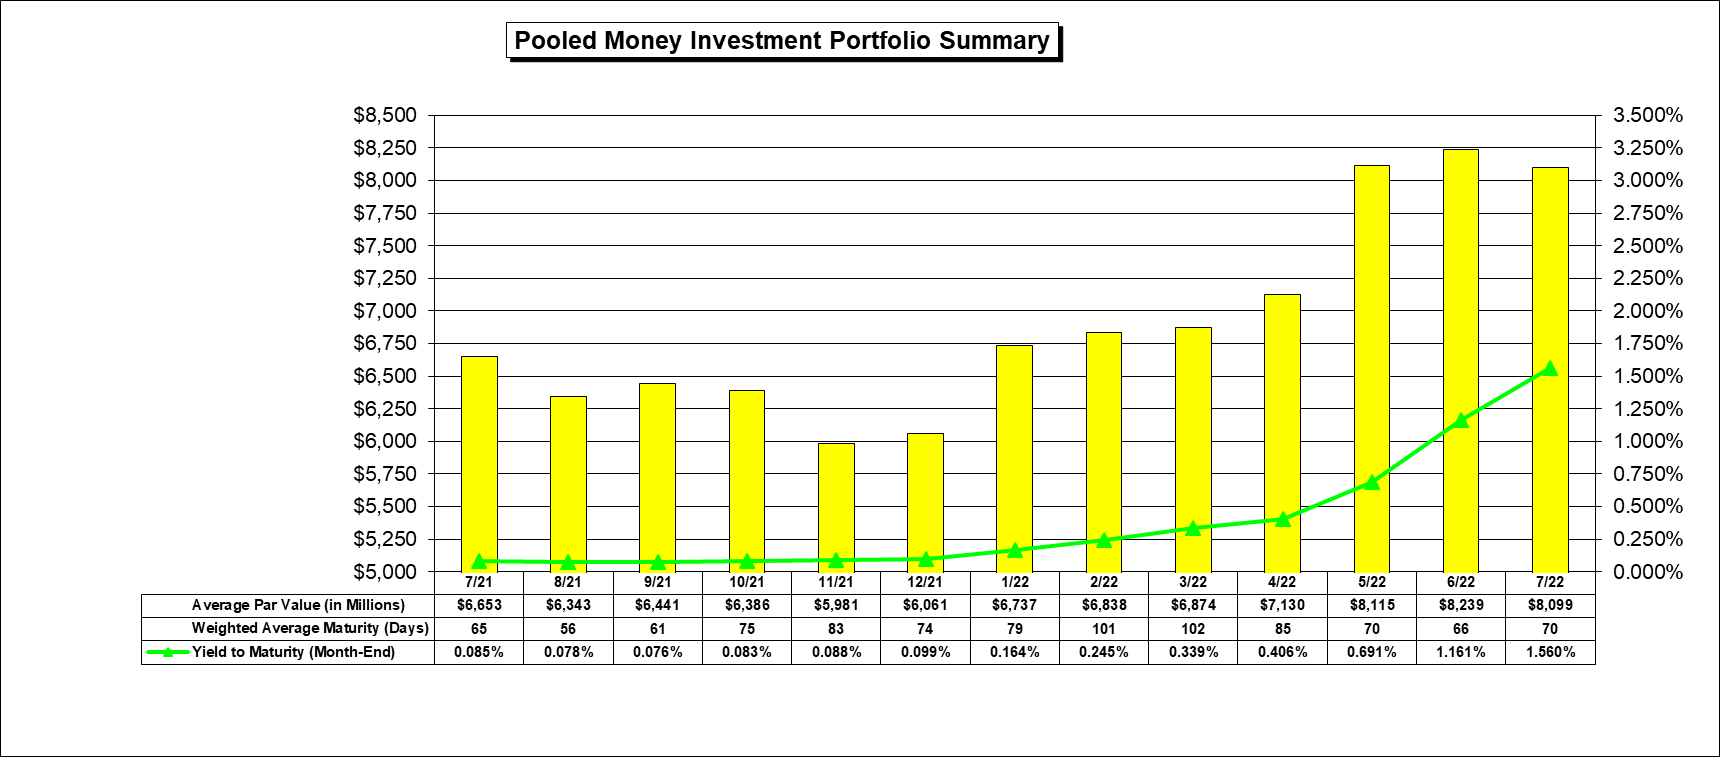 A Monthly Performance Graph of the Pooled Money Investment Portfolio (Data is as of Month-End).....(Specific Figures/Percentages are listed Below the Chart)......